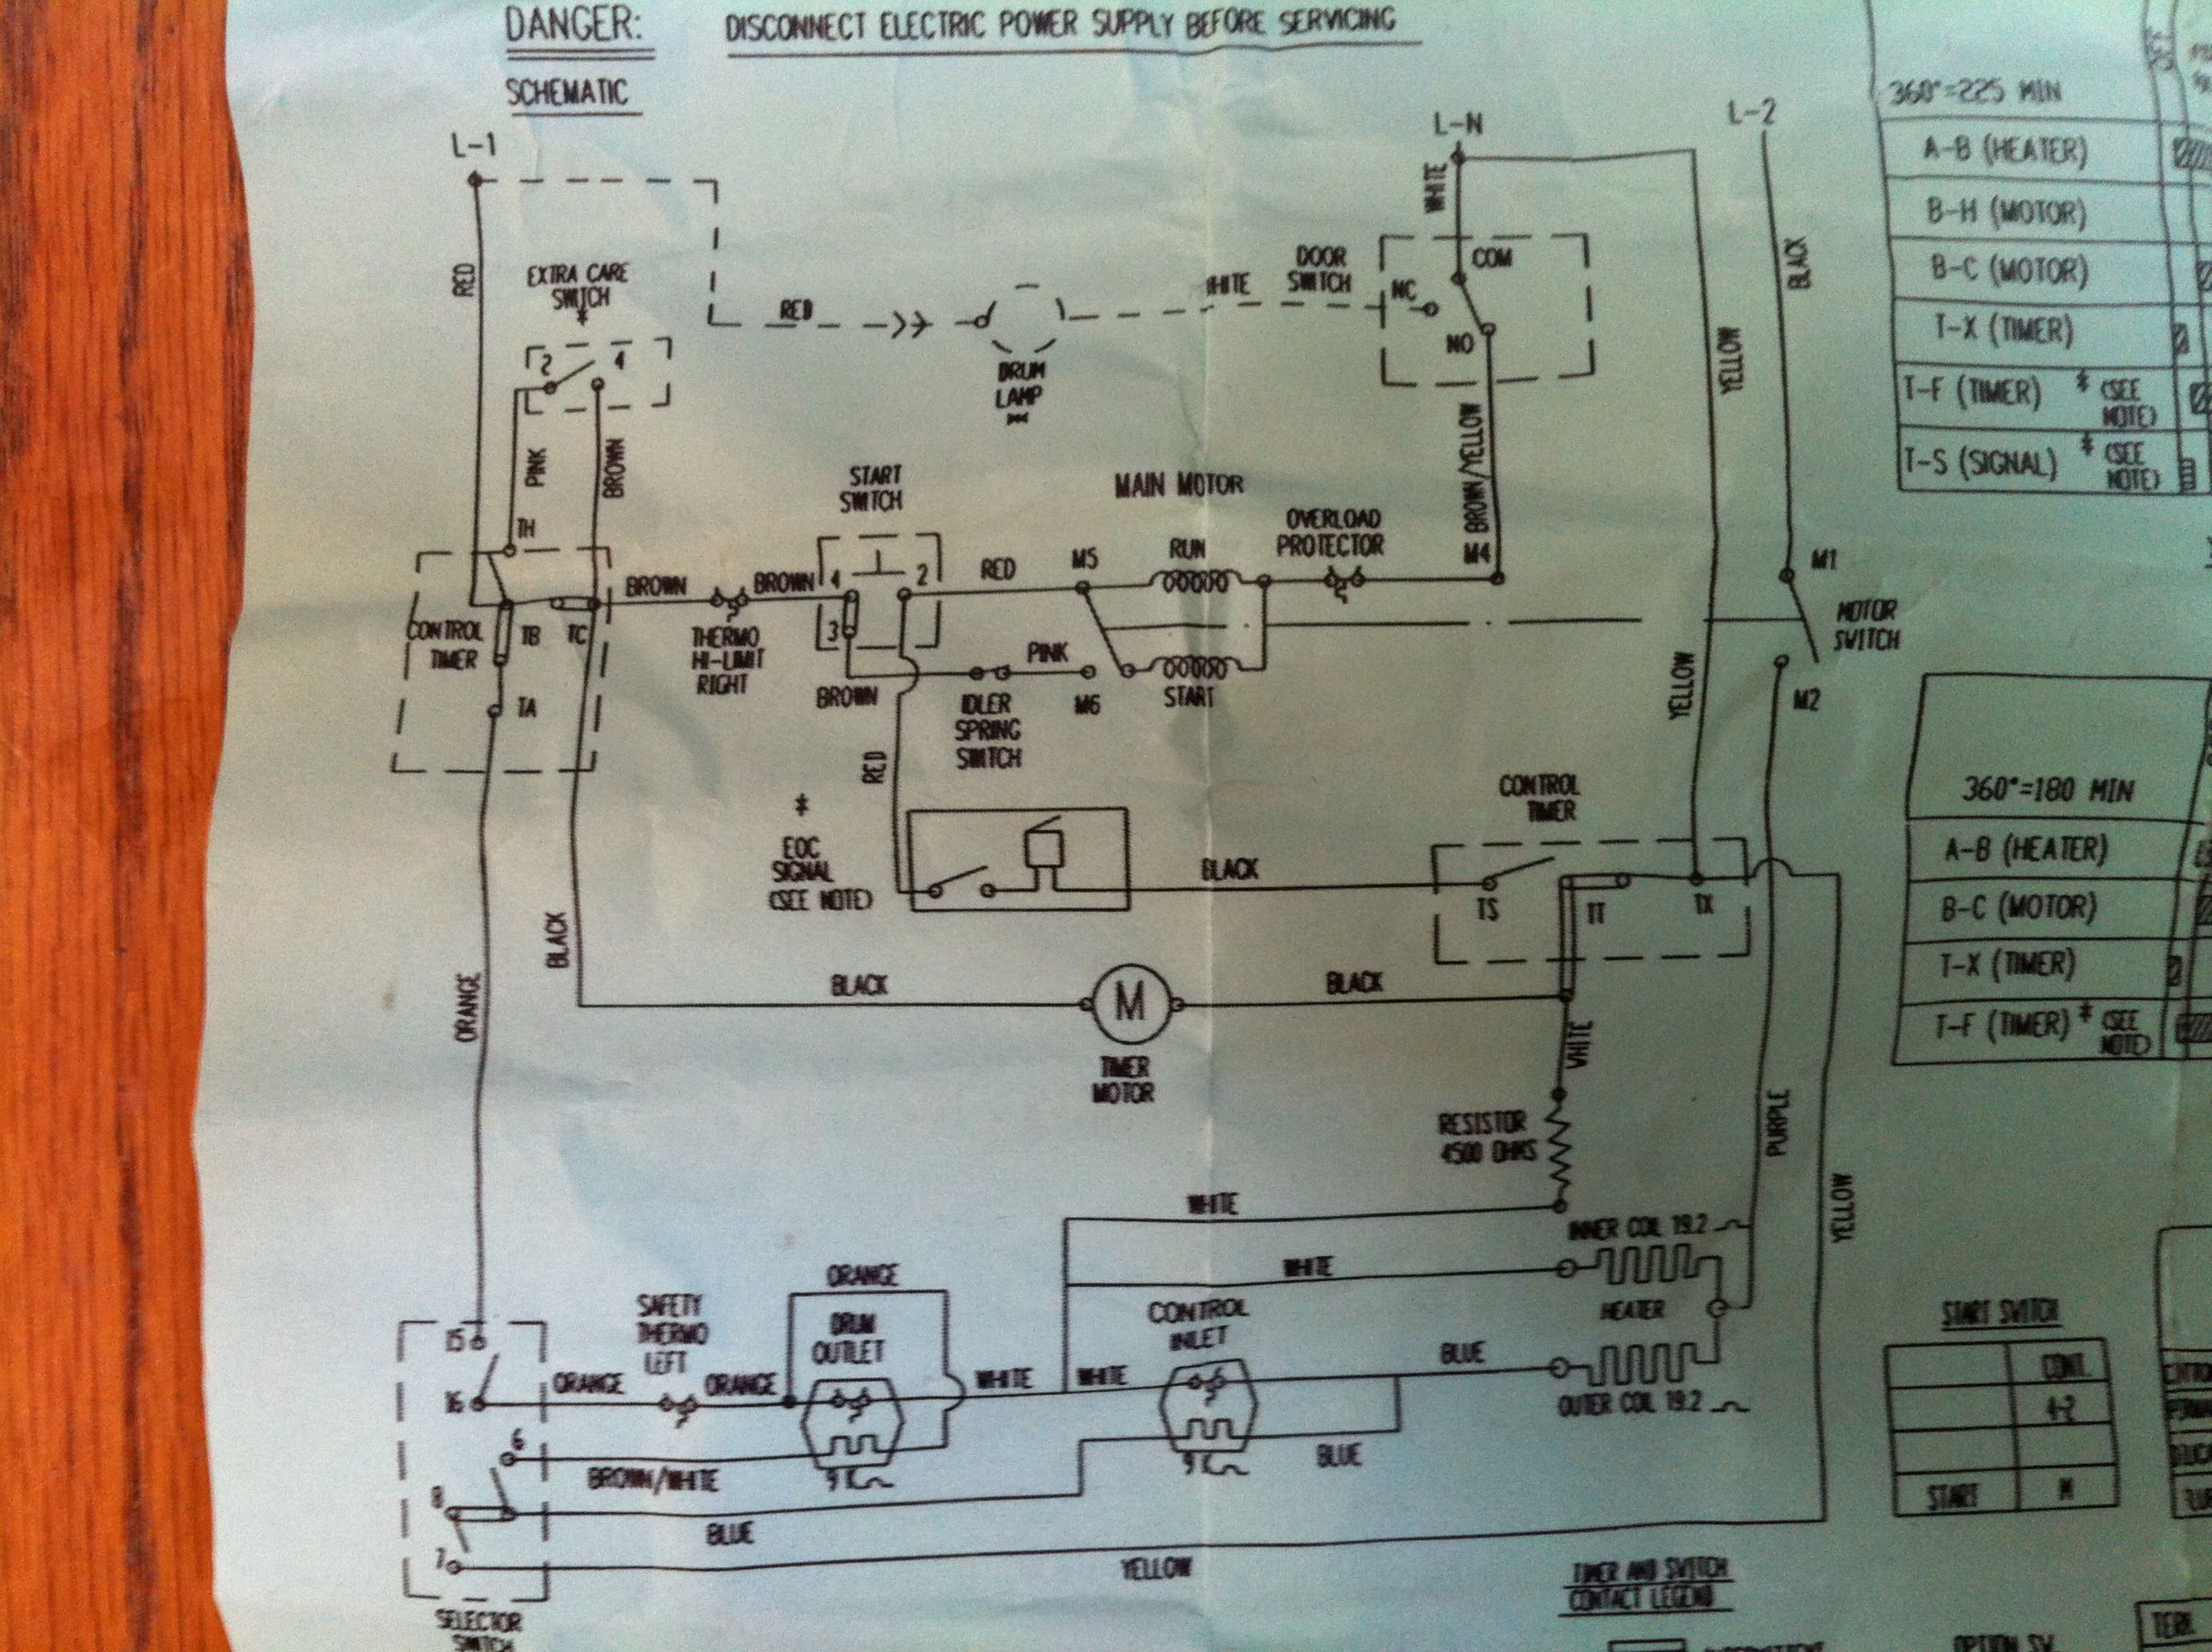 fisher paykel washer wiring diagram html with 4kg0l Ge Electric Dryer Will Not Run Motor on Washing Machine Repair 2 further Fisher Paykel Dryer Parts Wiring likewise Dryer besides White Westinghouse Washing Machine Parts also Porsche Wiring Diagram Bmw Biondo Delay Box.